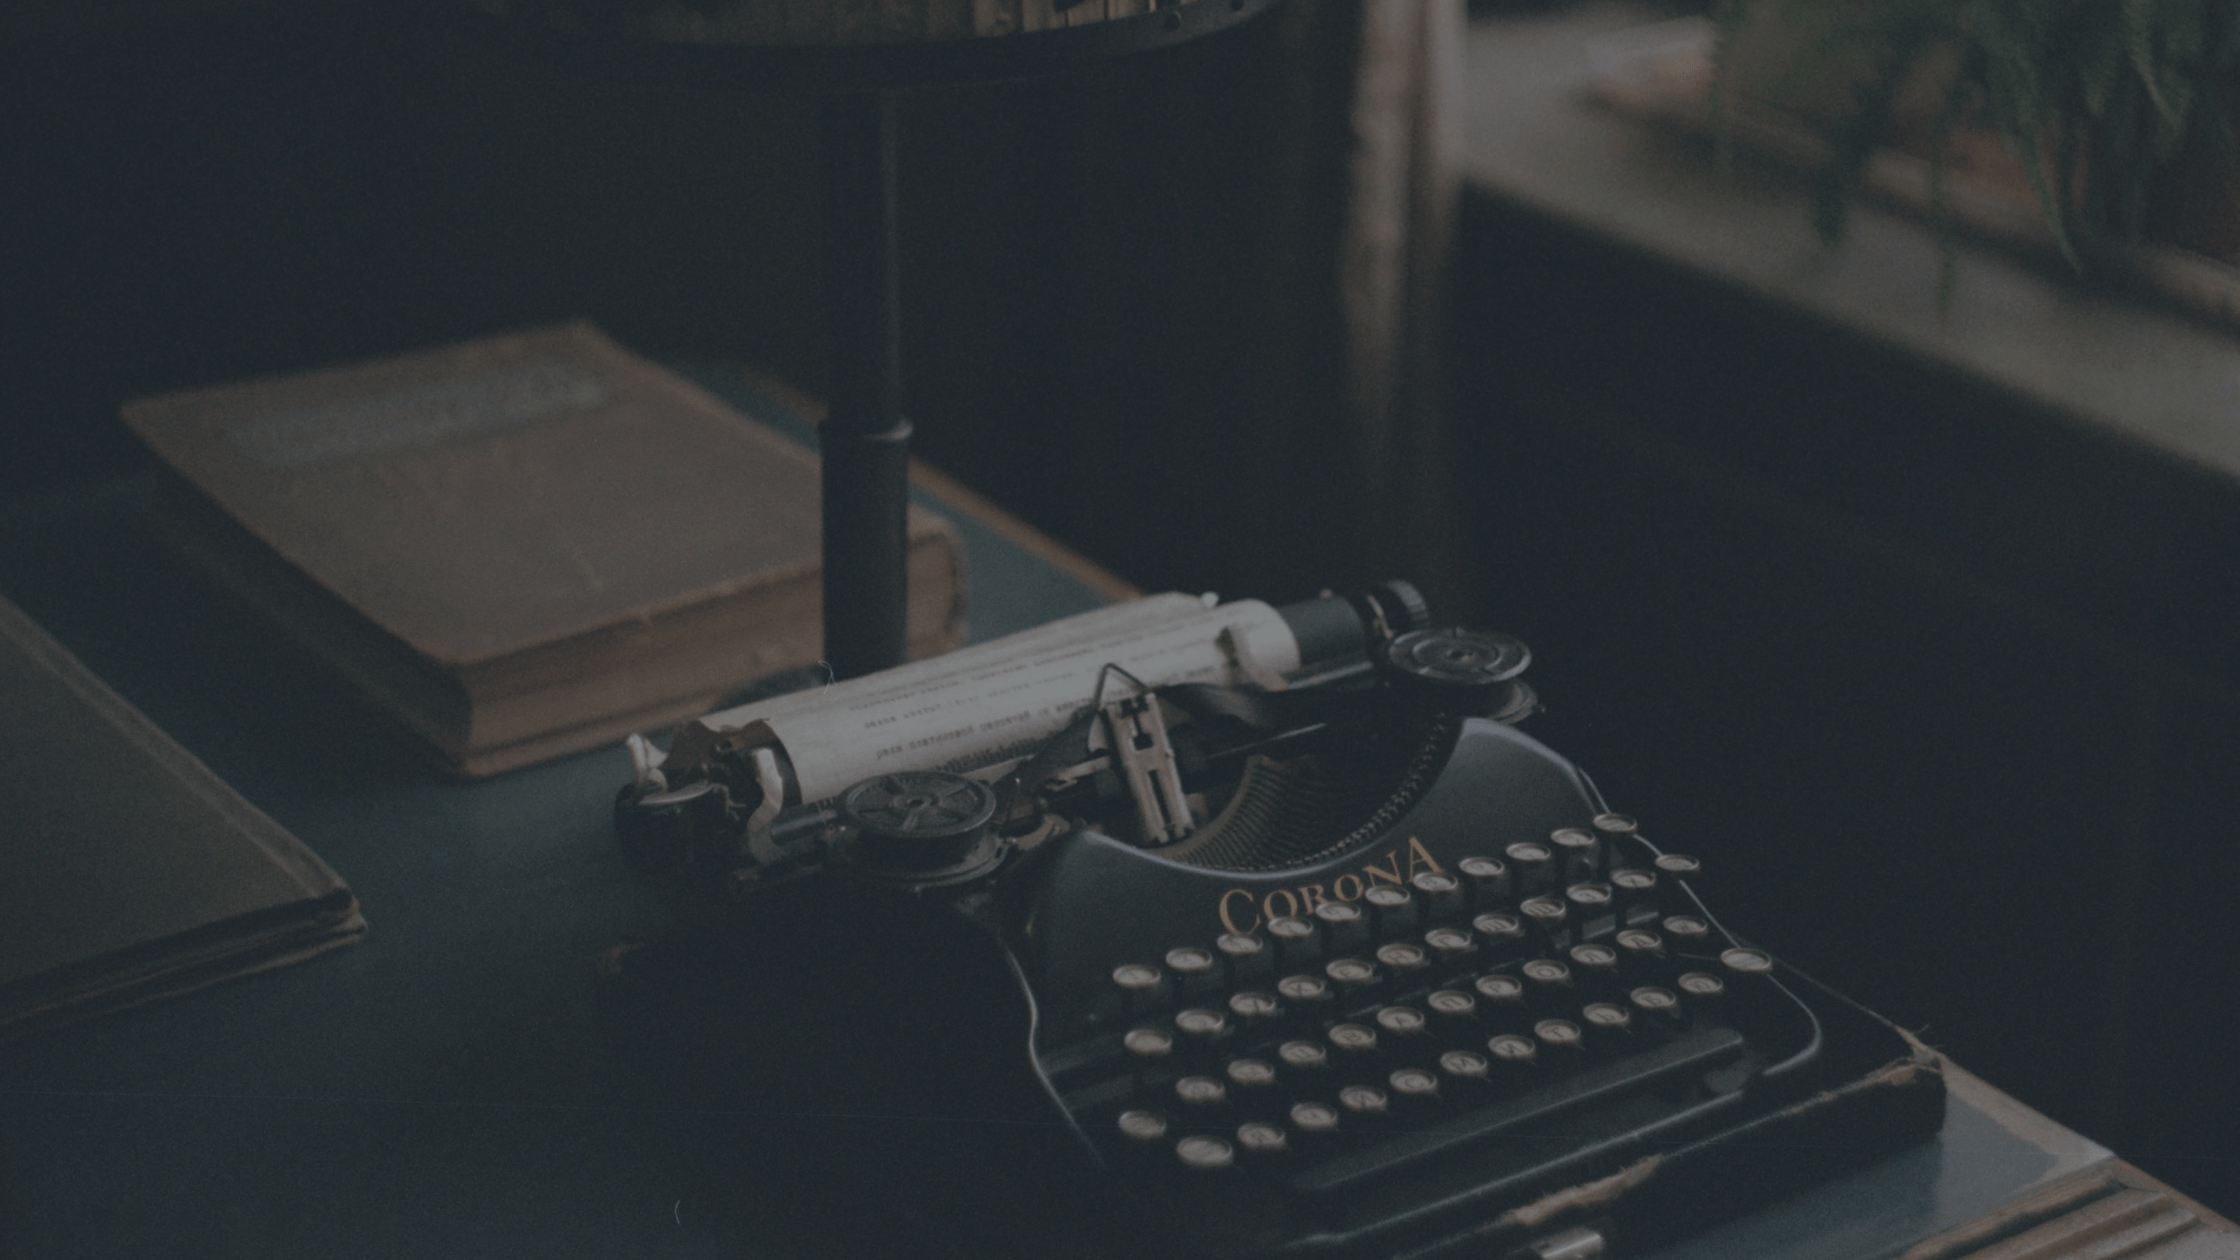 Typewriter for friendly SEO friendly content.